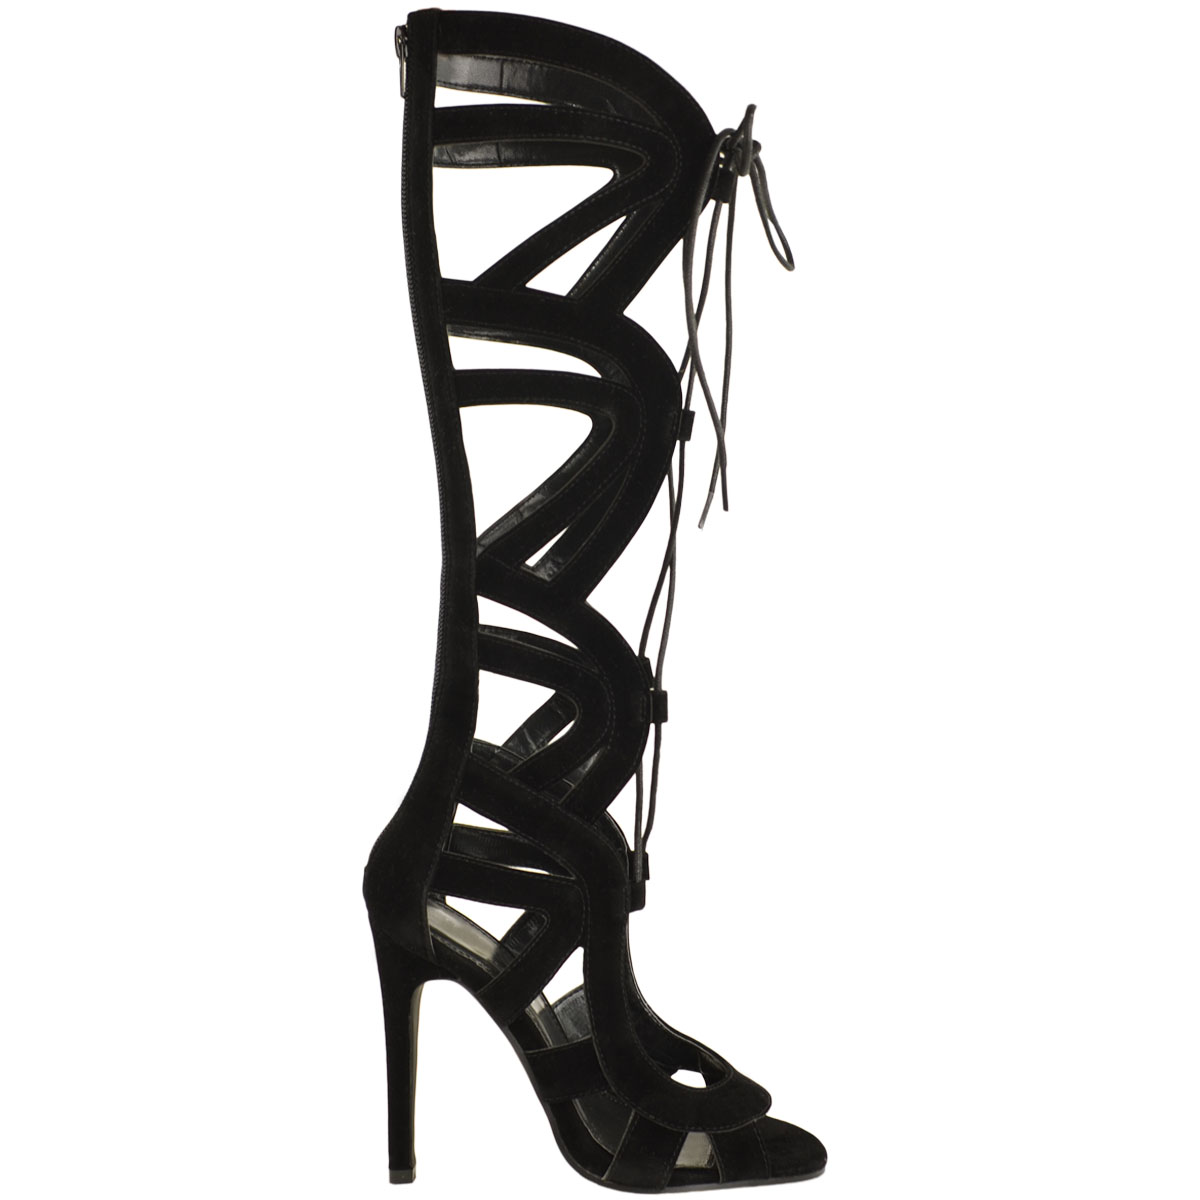 cd0d9b32f3e LADIES WOMENS KNEE HIGH LACE UP CUT OUT SHOES HEELS GLADIATOR ...